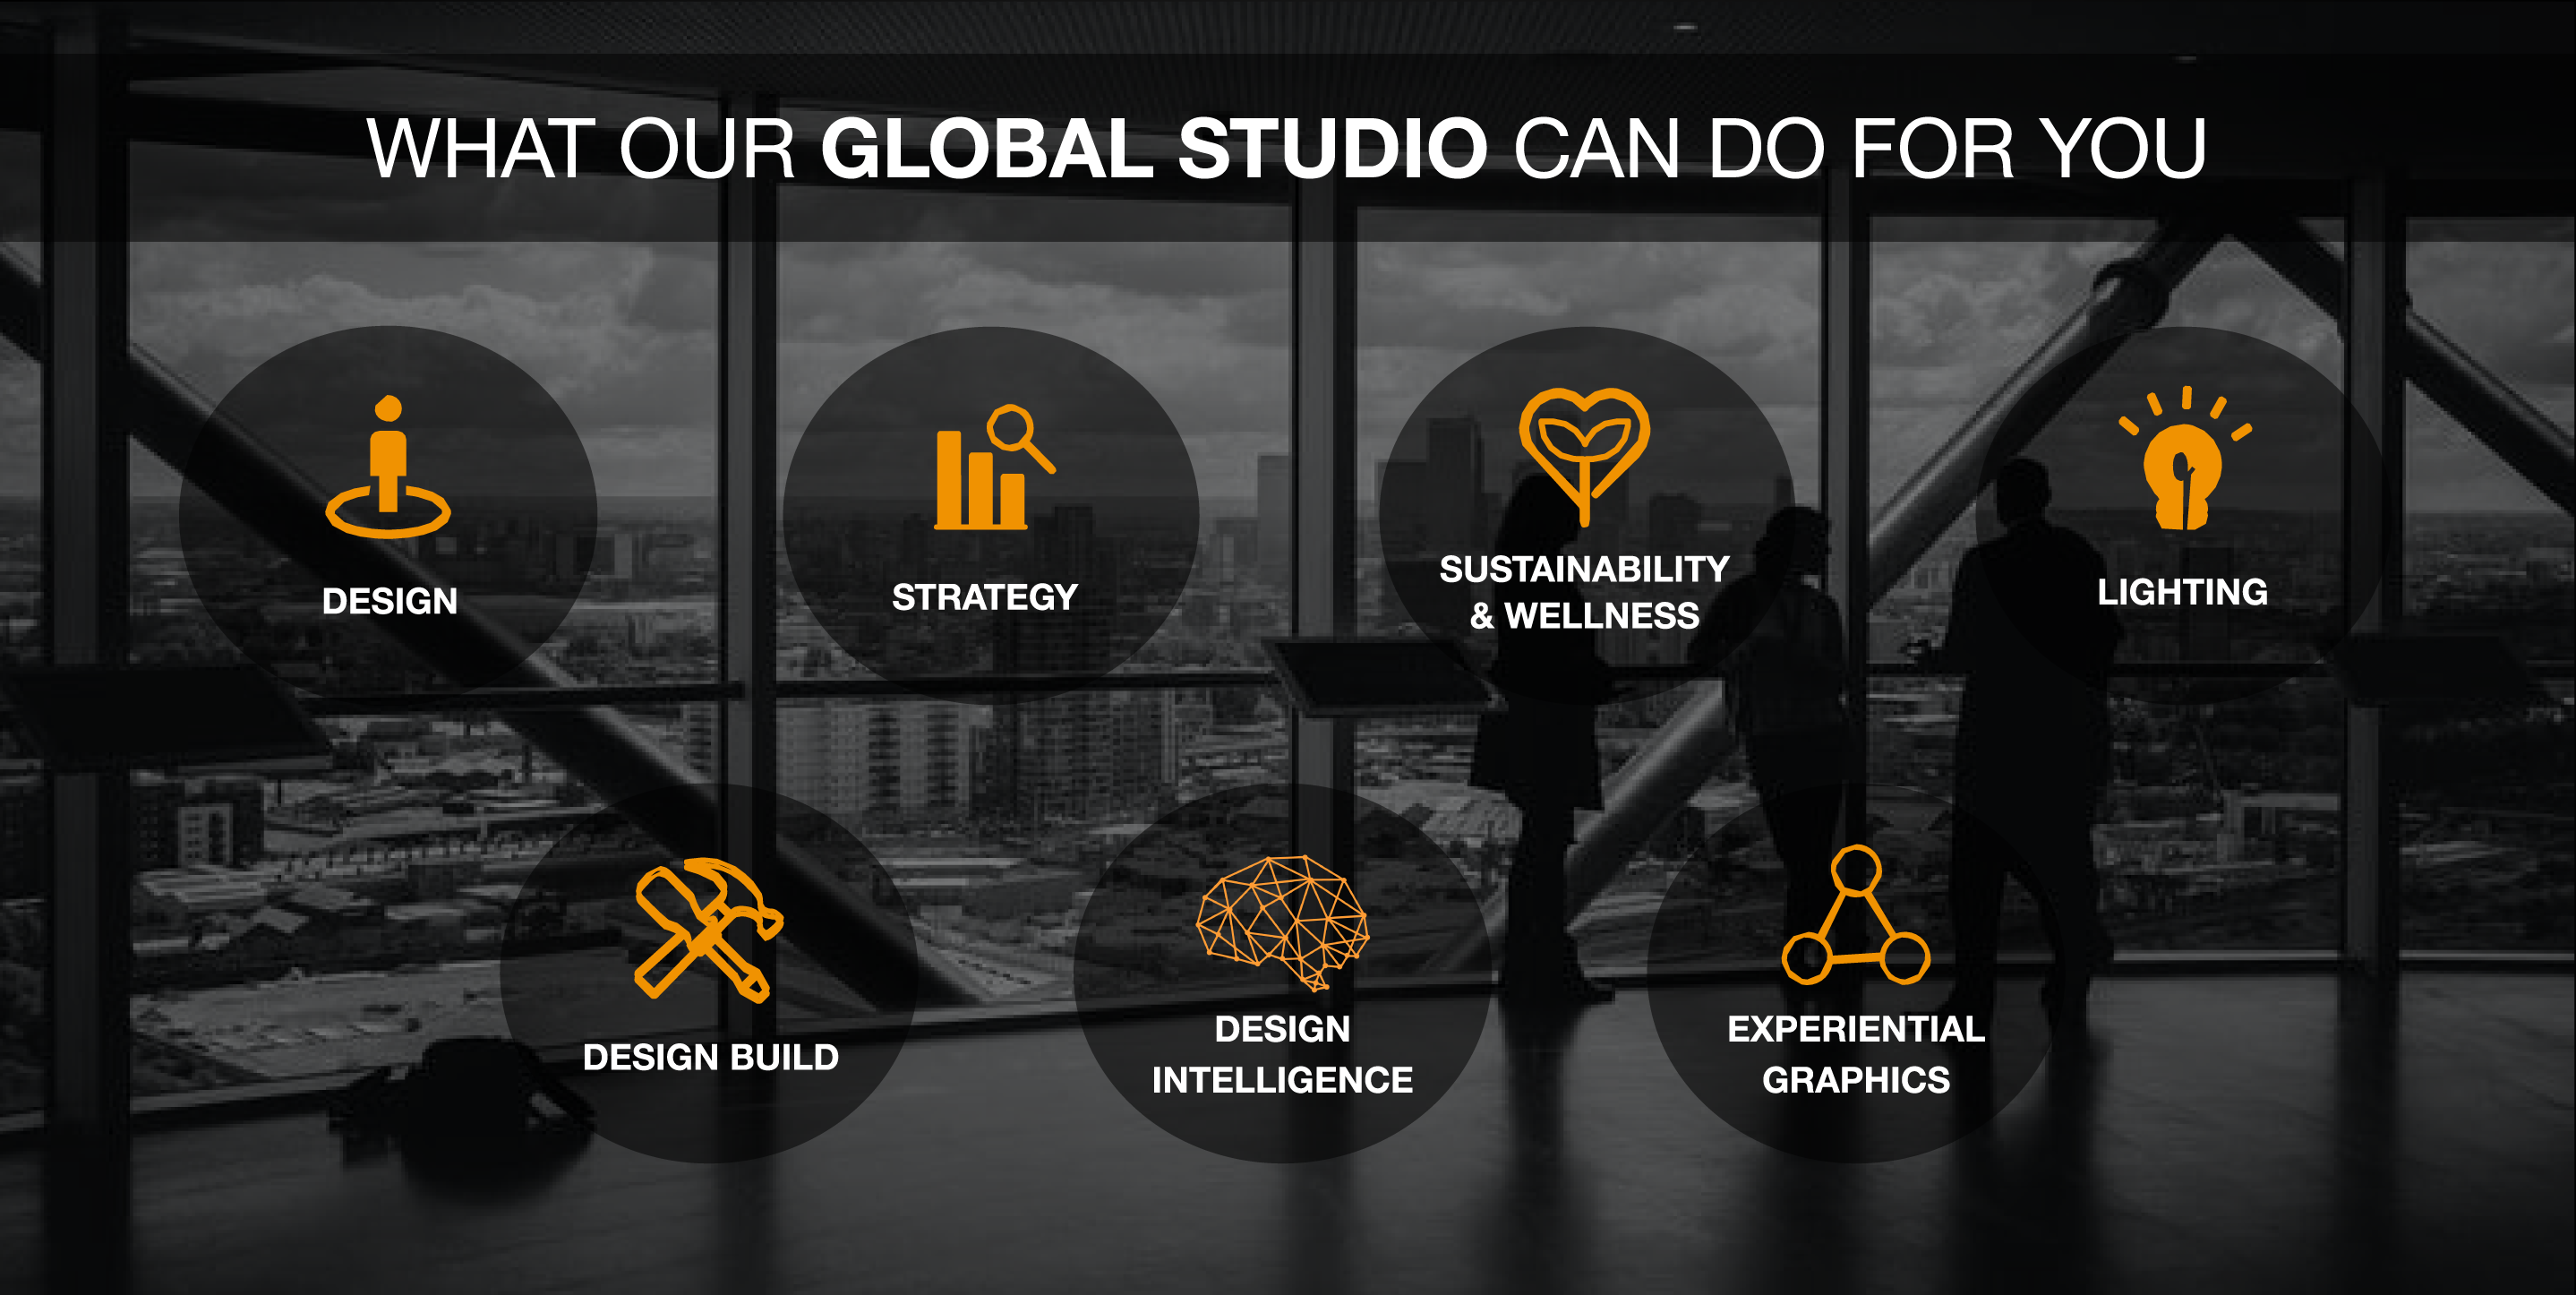 our global studio